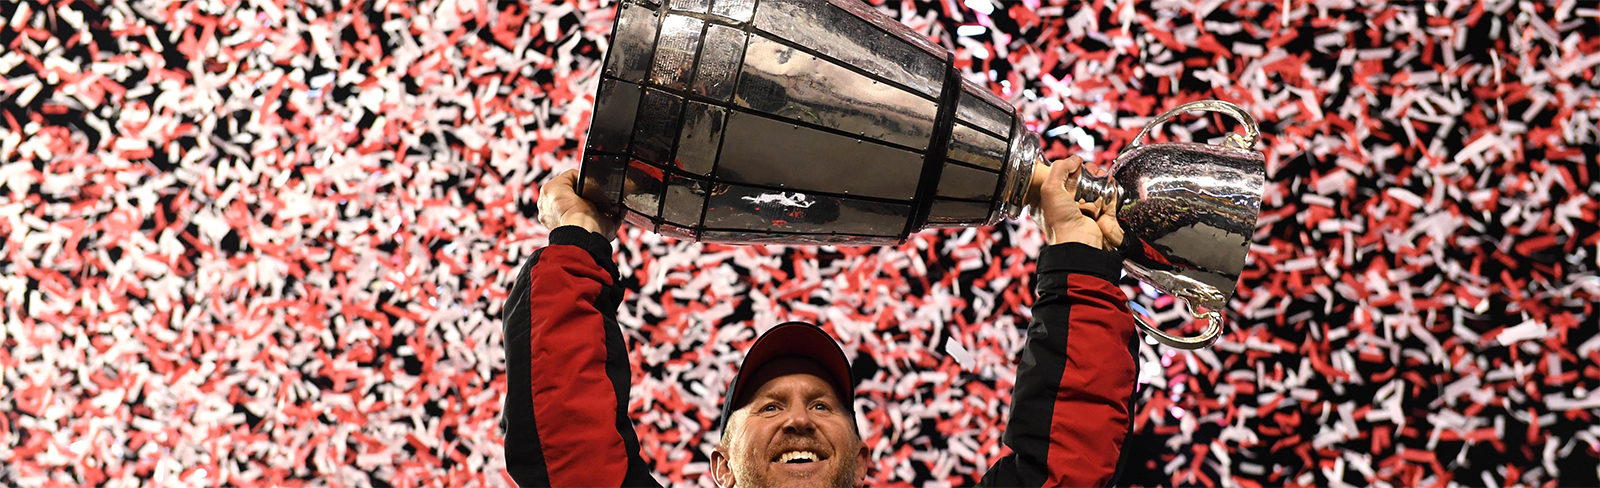 2018 Grey Cup Champions Calgary Stampeders